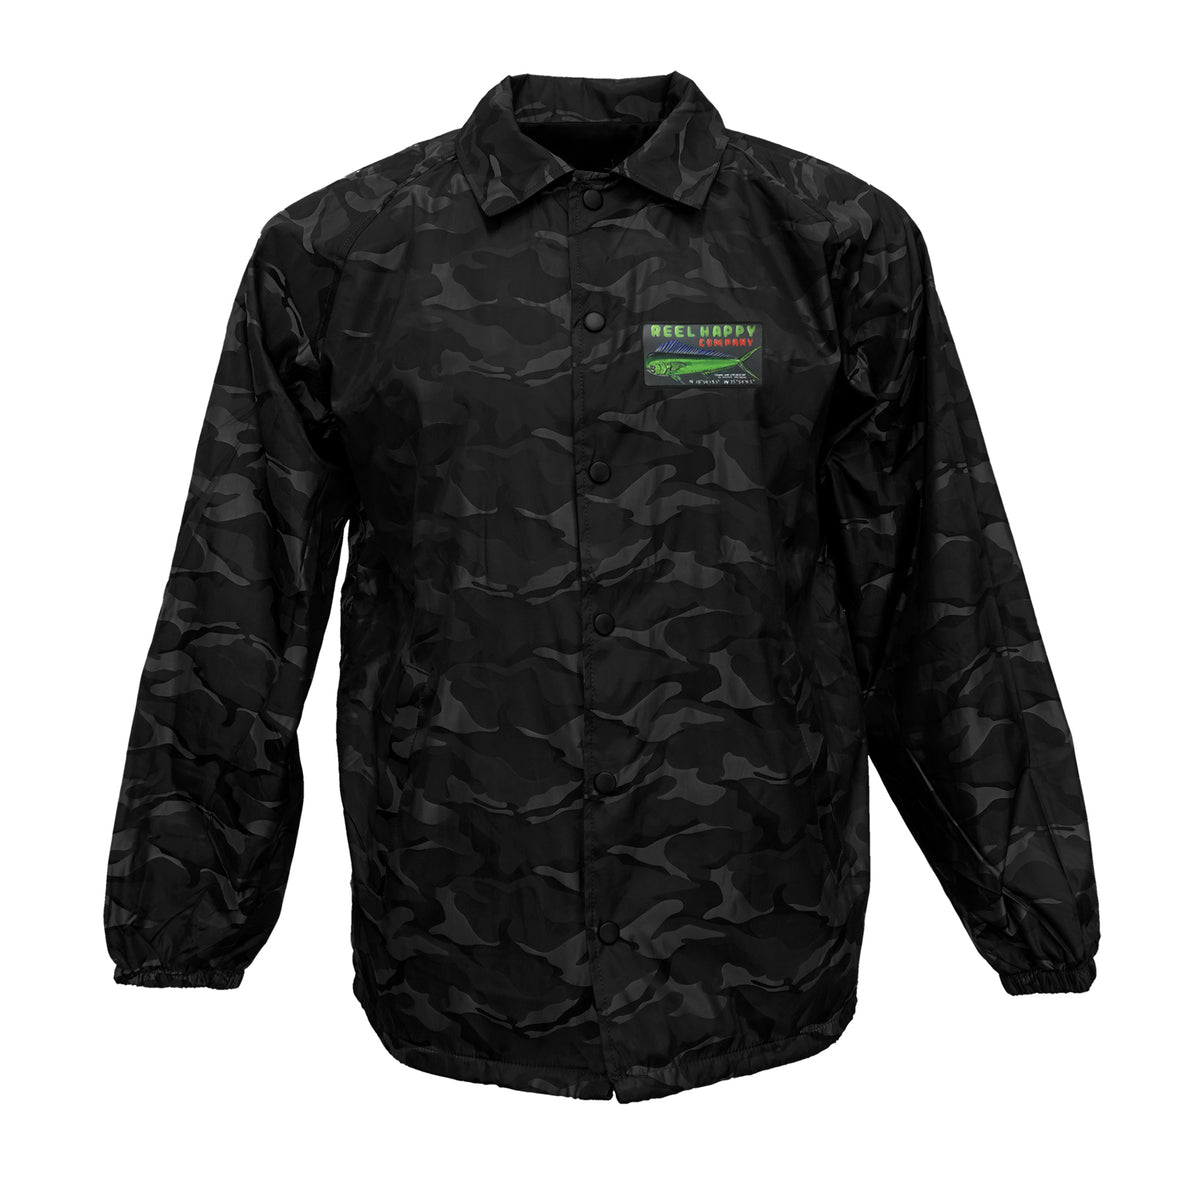 Dorado Sign Windbreaker - Black Camo - Reel Happy Co